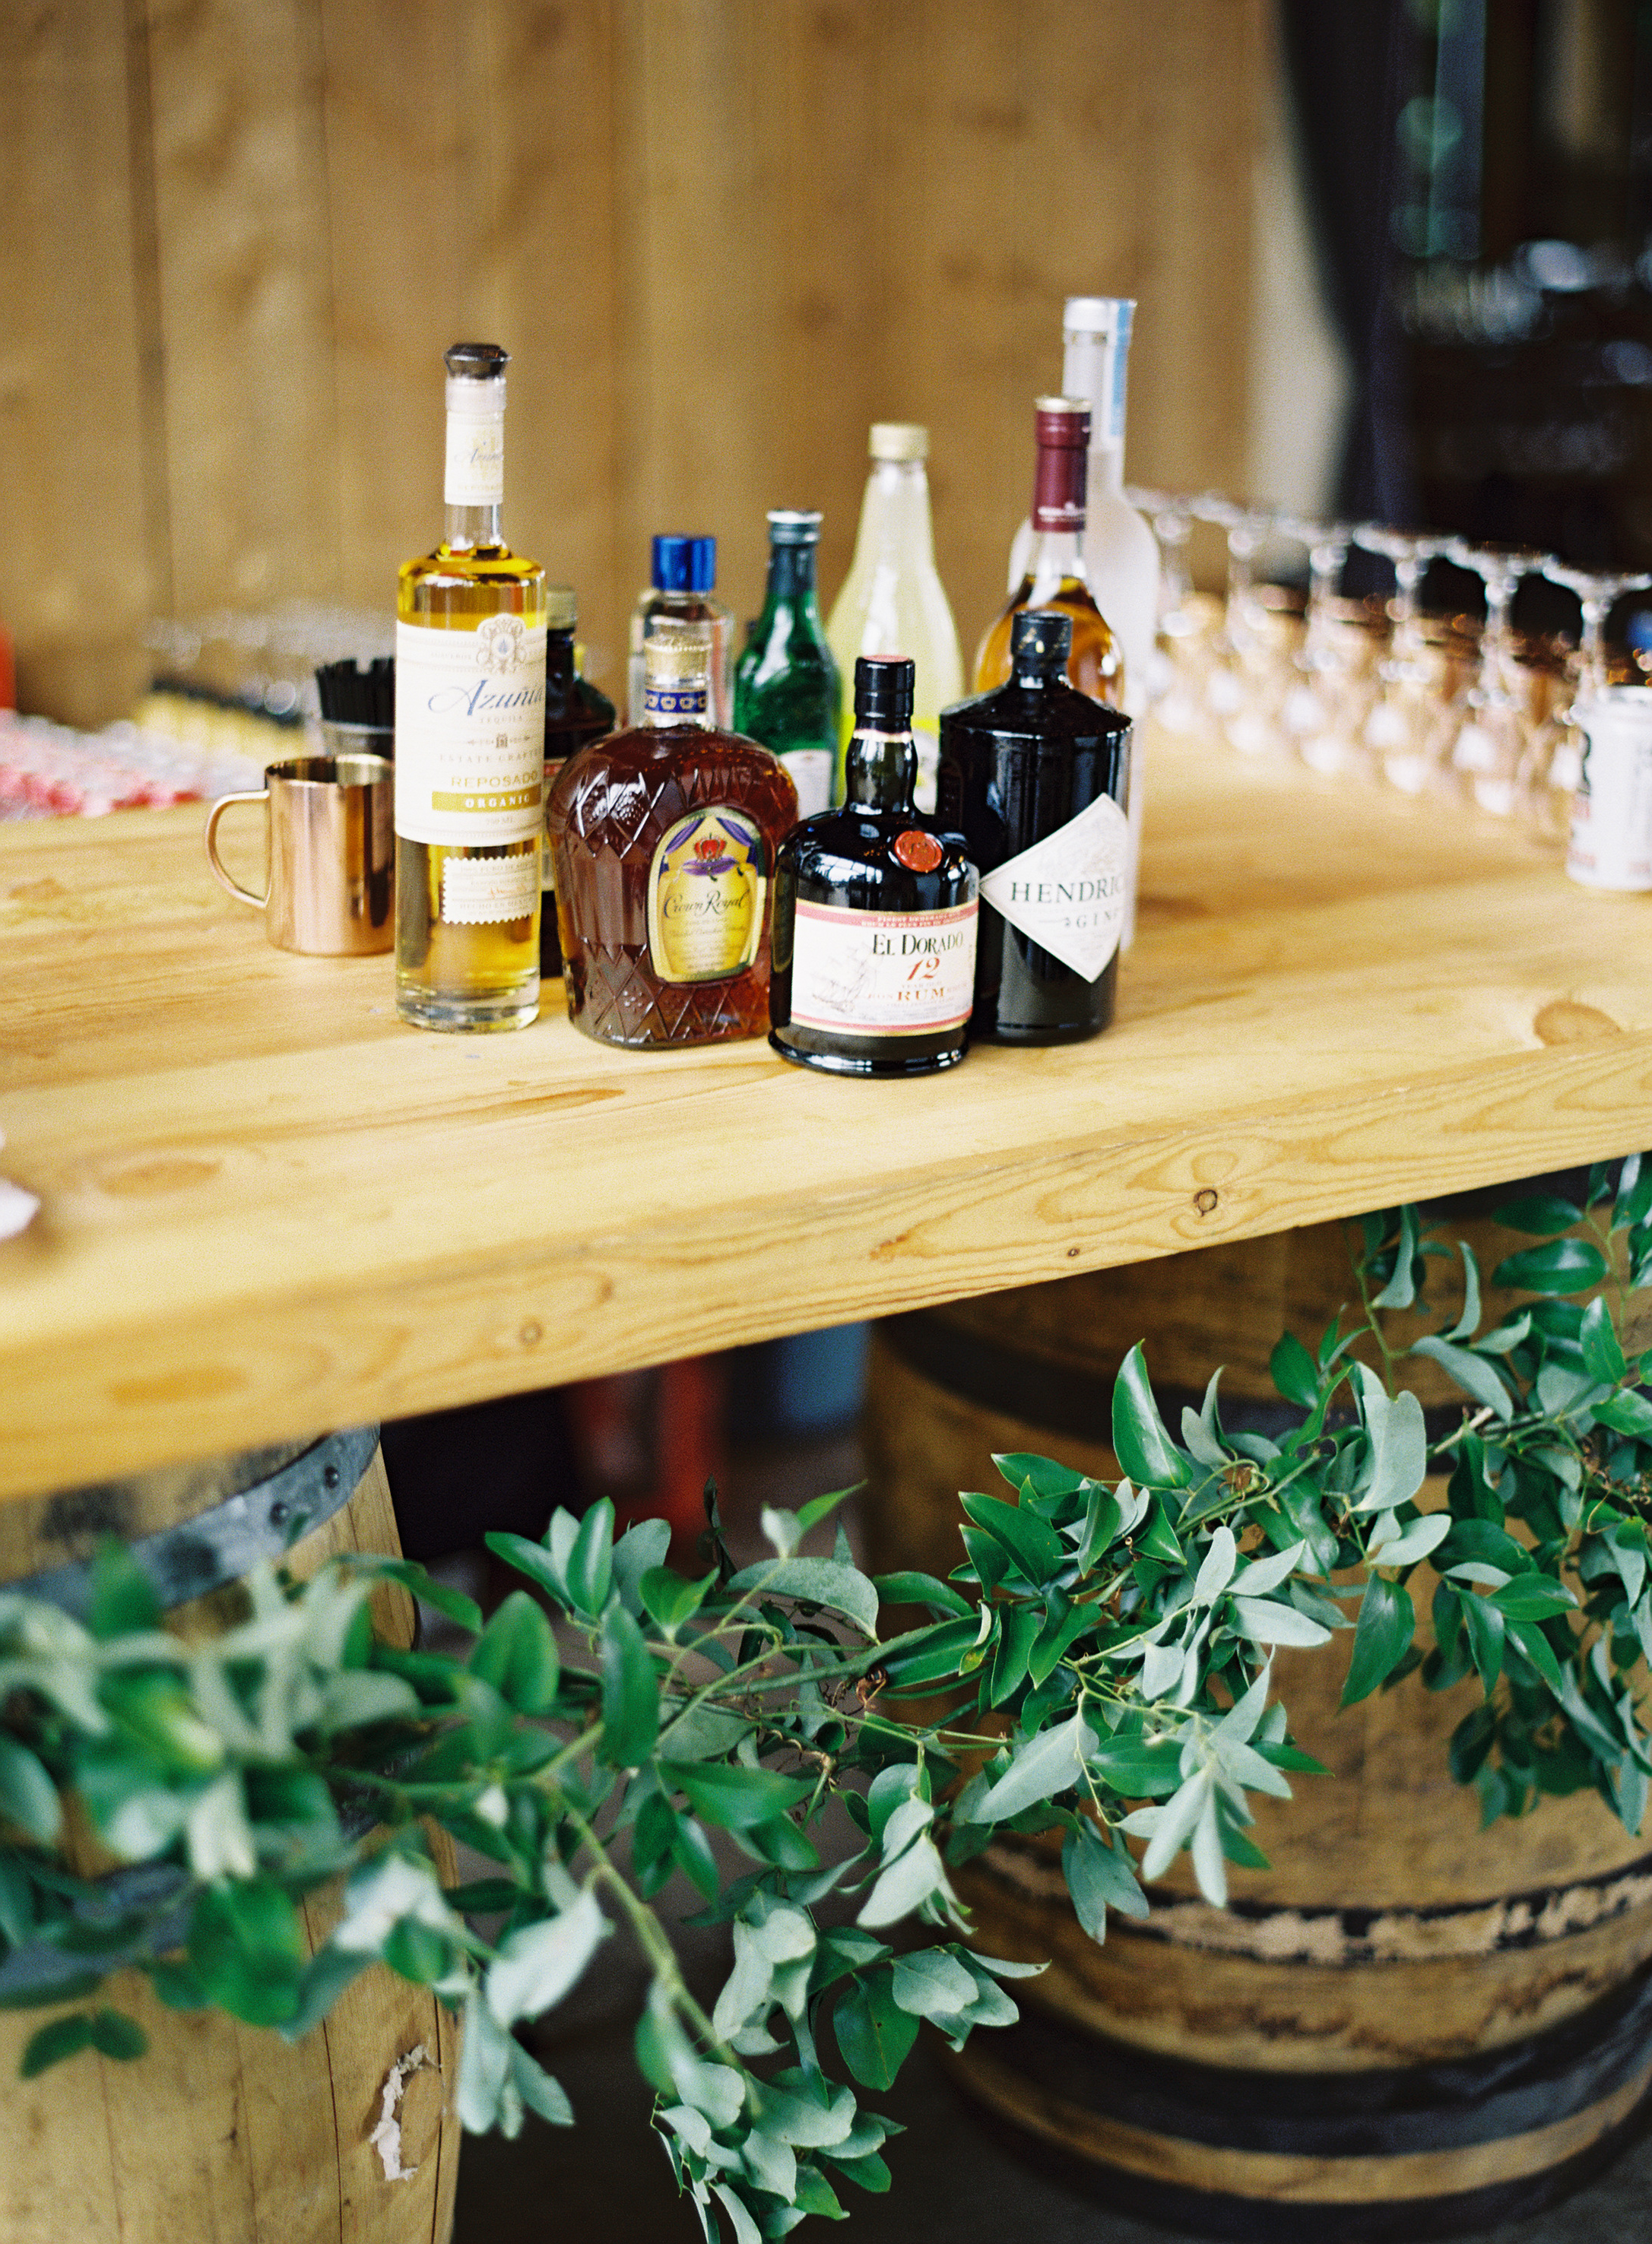 Liquor bottles at wedding on rustic table with barrels and greenery